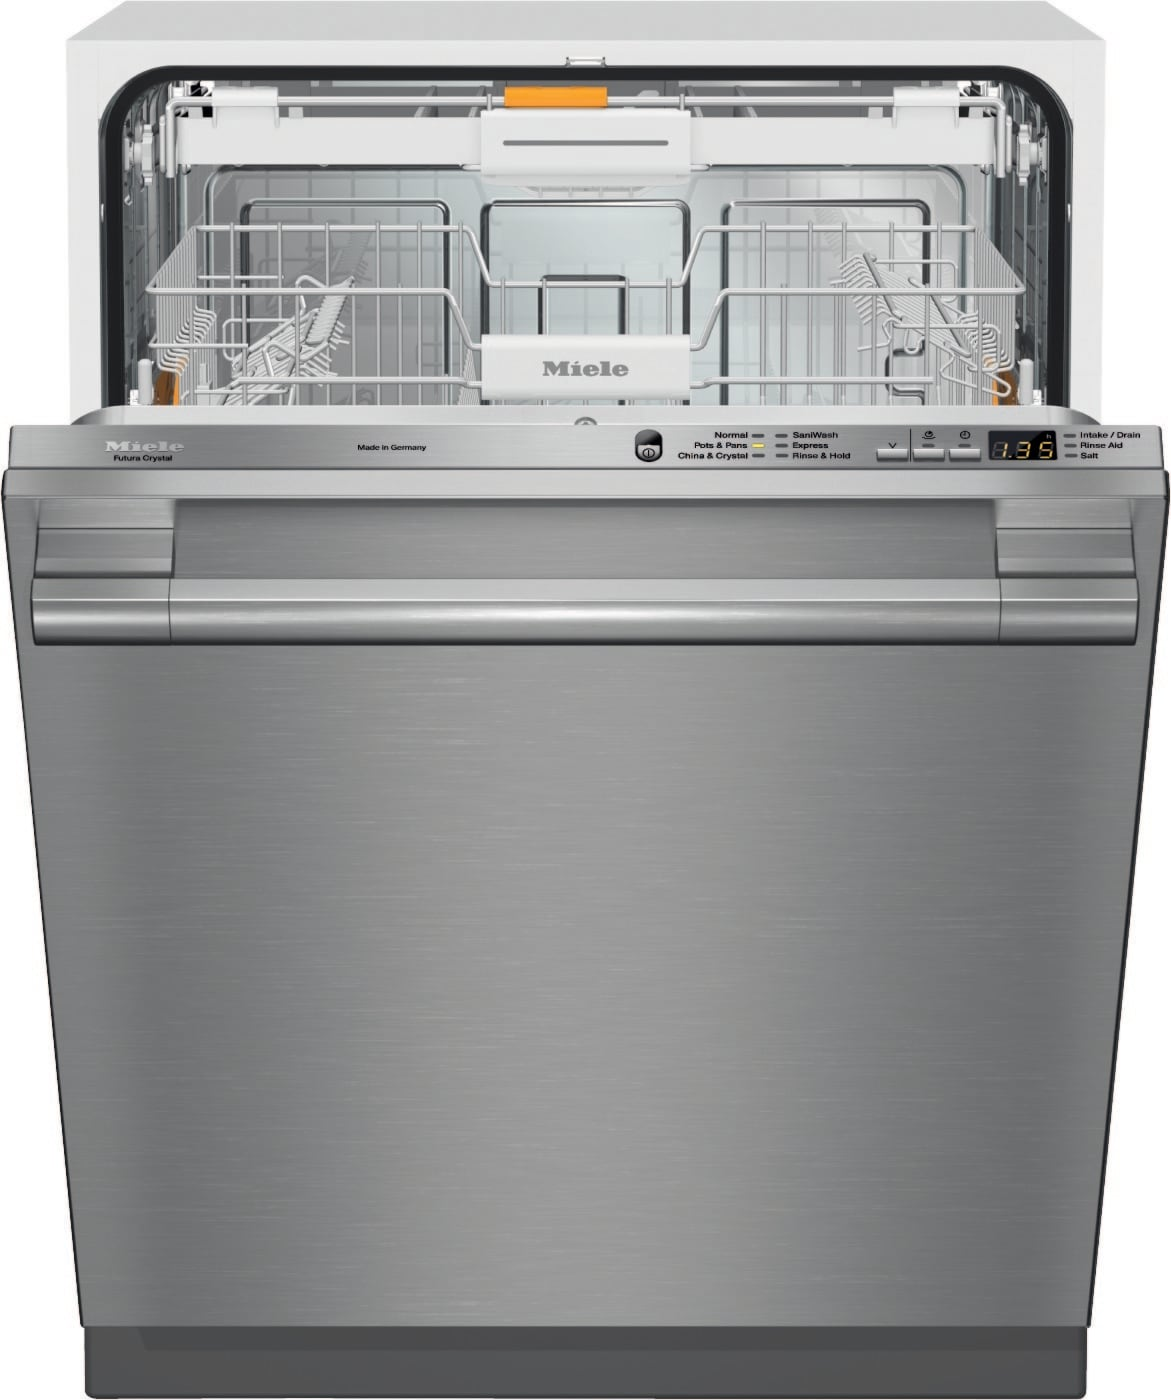 Miele G6165scvi Fully Integrated Dishwasher With 6 Wash